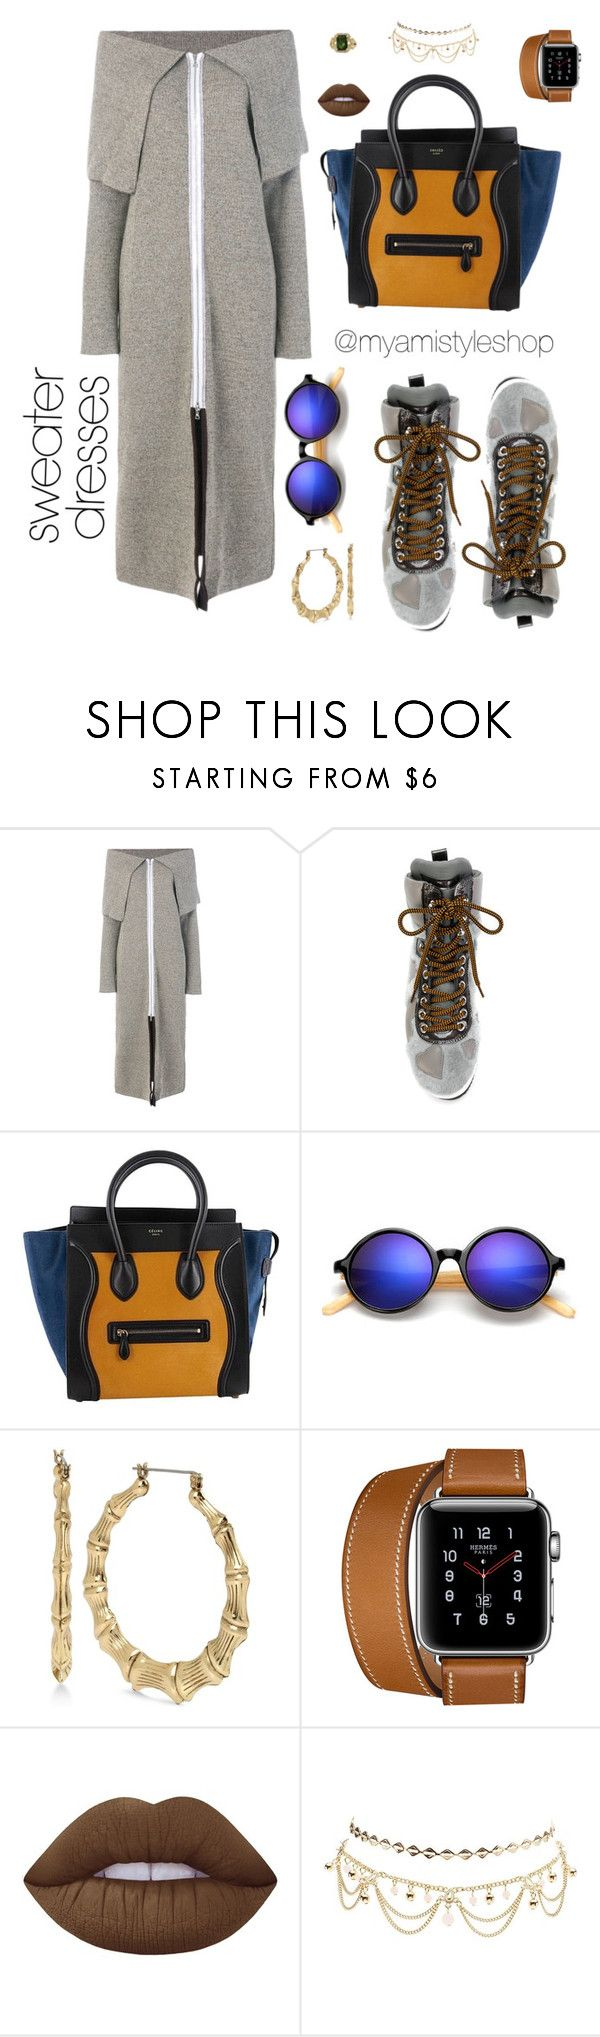 """""""Ci 🤗💕❤️"""" by myamistyle ❤ liked on Polyvore featuring Walk of Shame, Philippe Model, CÉLINE, Betsey Johnson, Lime Crime, Charlotte Russe, StreetStyle, Boots, celine and sweaterdresses"""